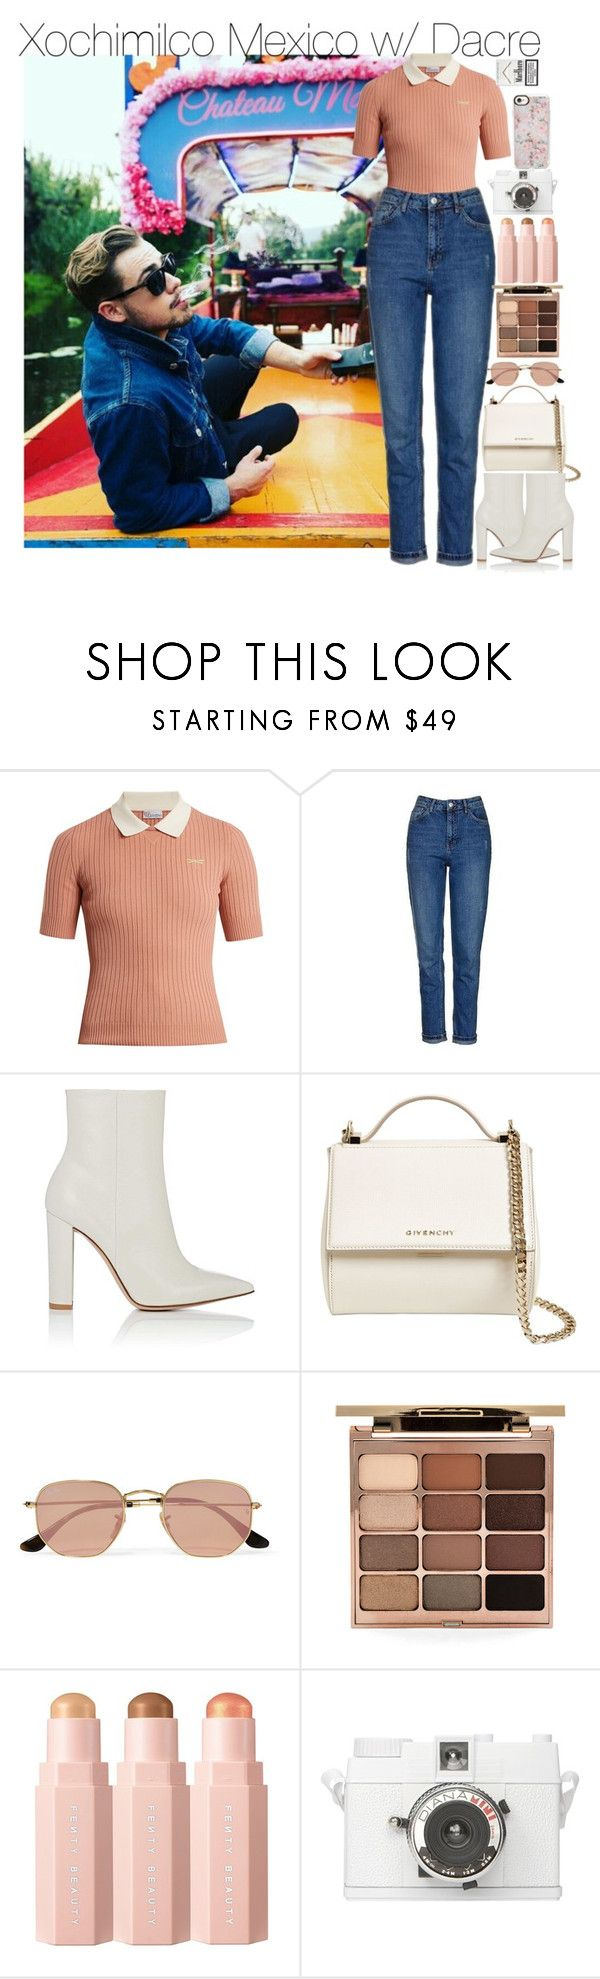 """Xochimilco Mexico w/ Dacre"" by larissaglz ❤ liked on Polyvore featuring RED Valentino, Topshop, Gianvito Rossi, Givenchy, Ray-Ban, Stila, Casetify, dayout, mexico and billy"